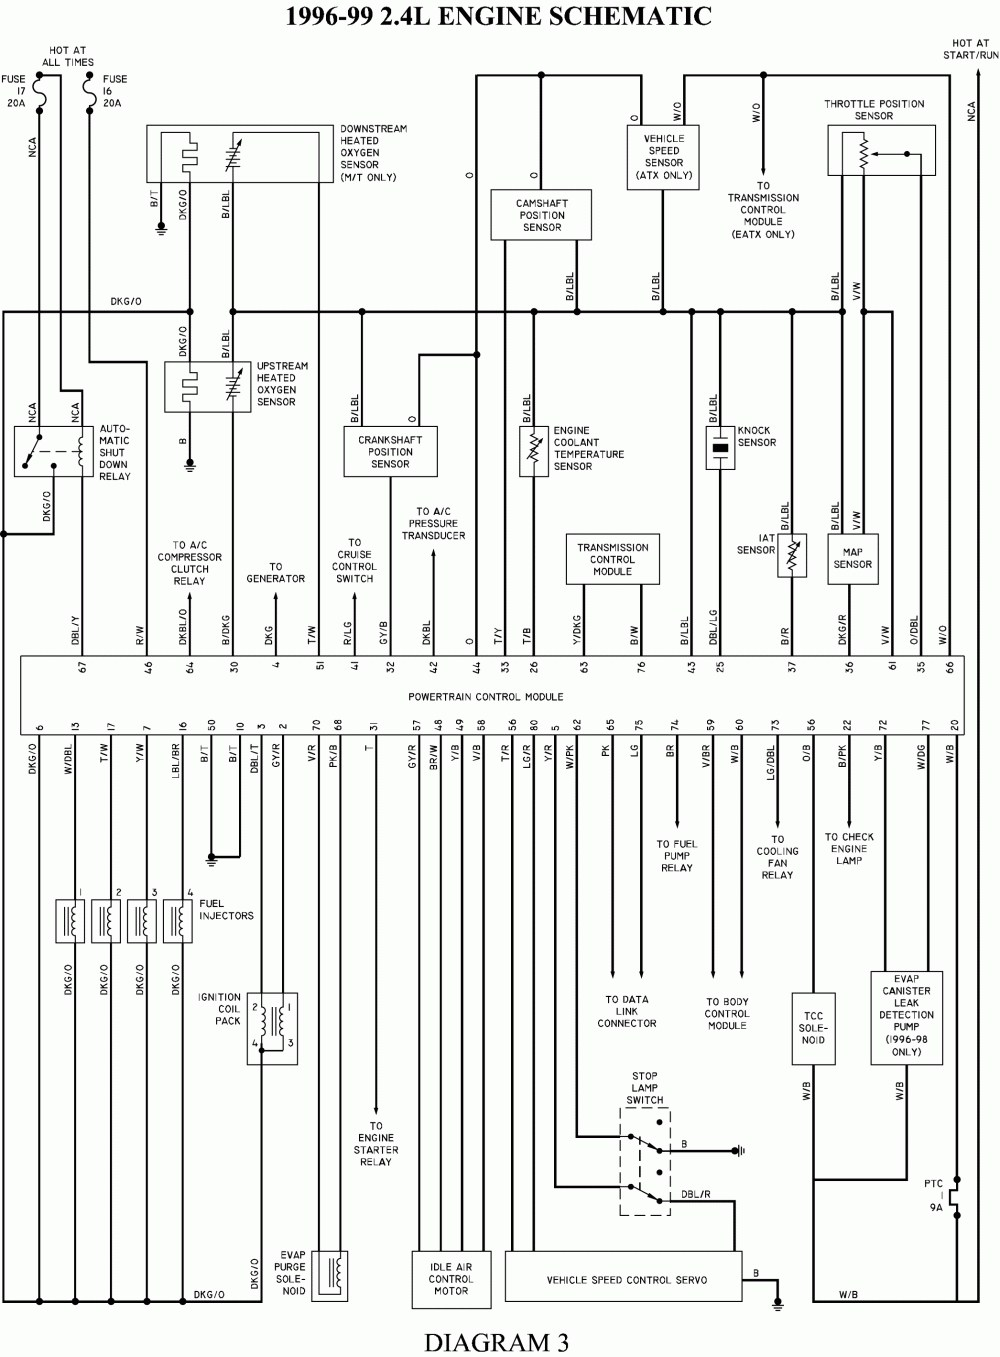 1997 Plymouth Grand Voyager Wiring Diagram